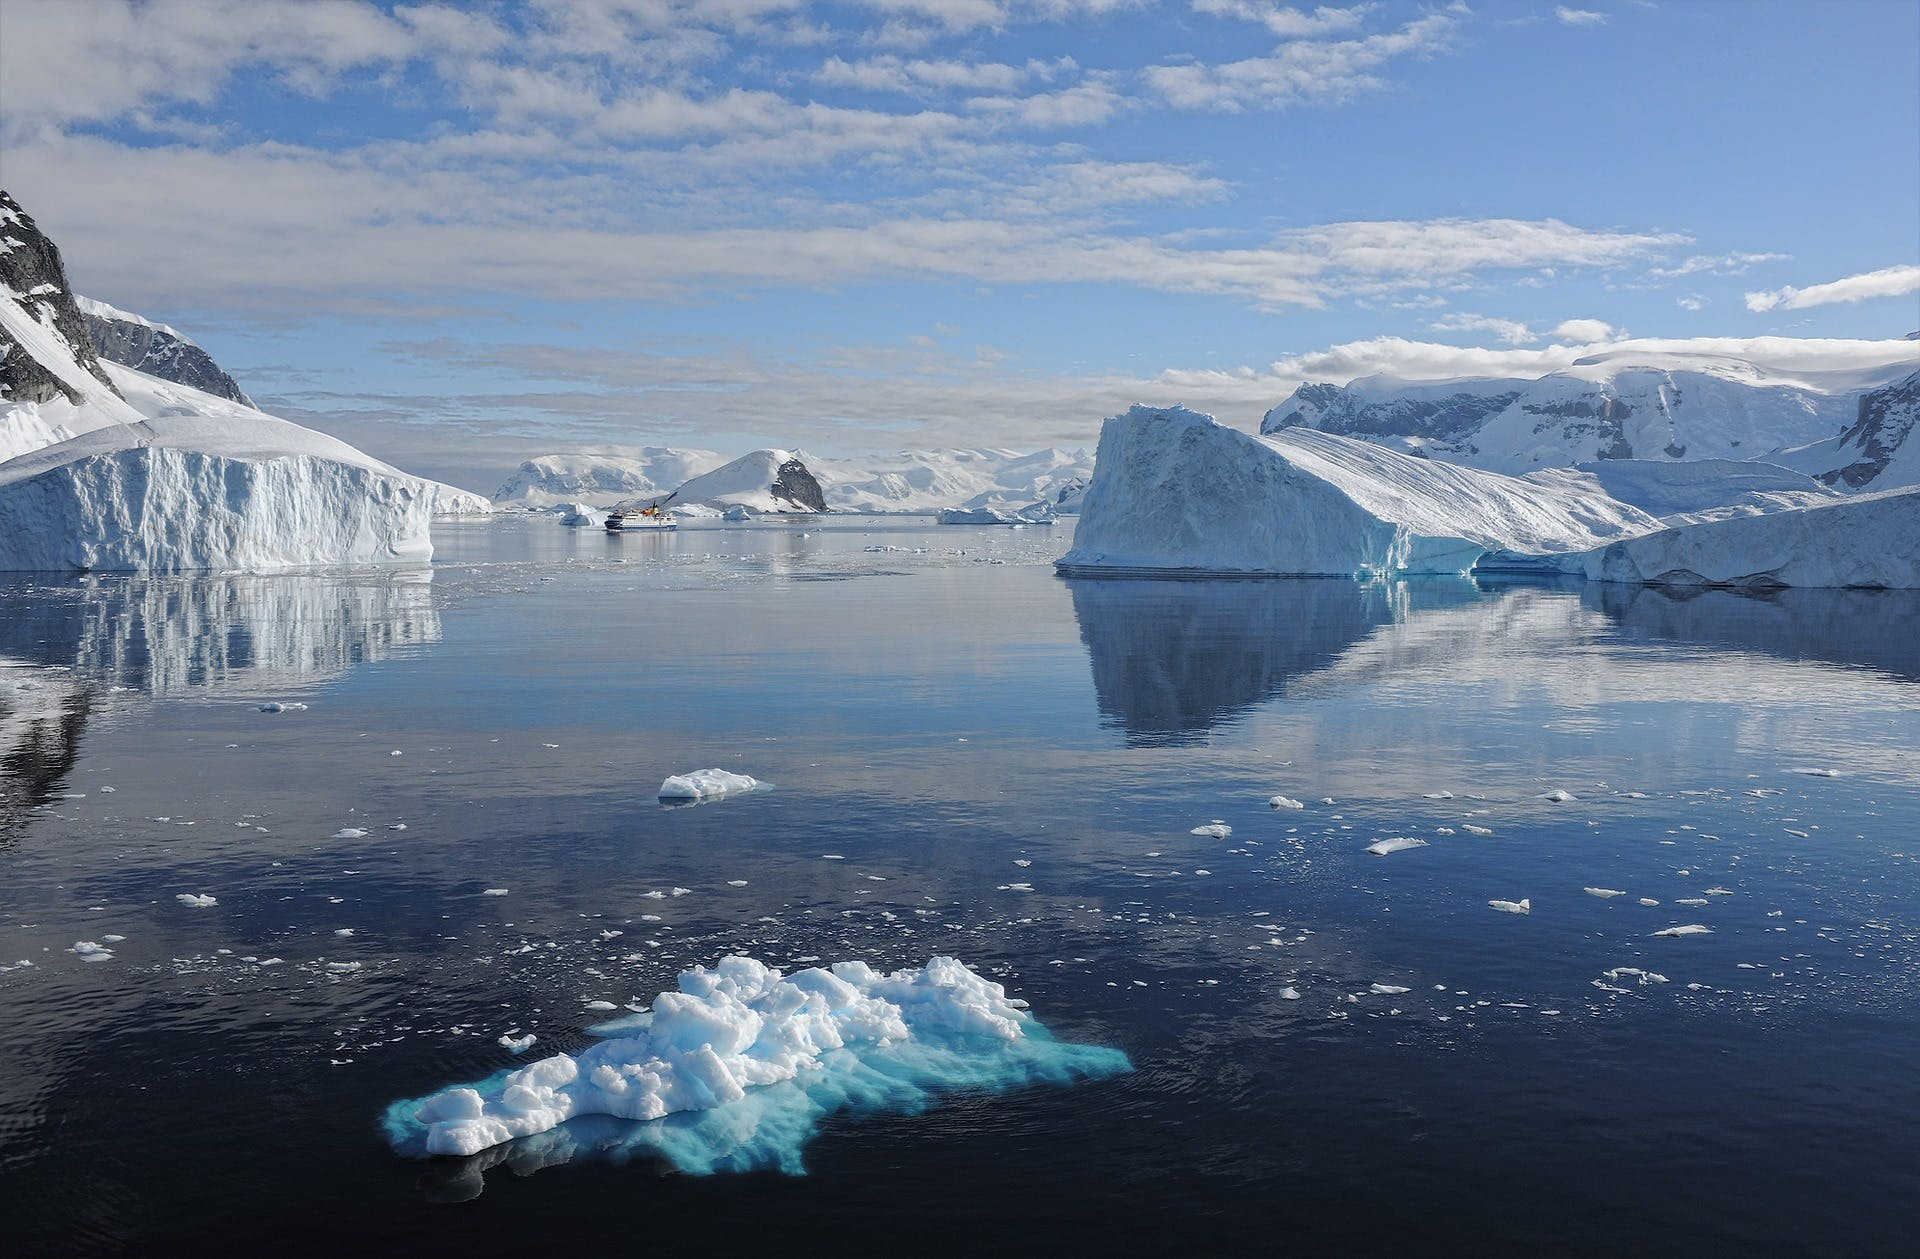 Antarctic landscape of icebergs and water